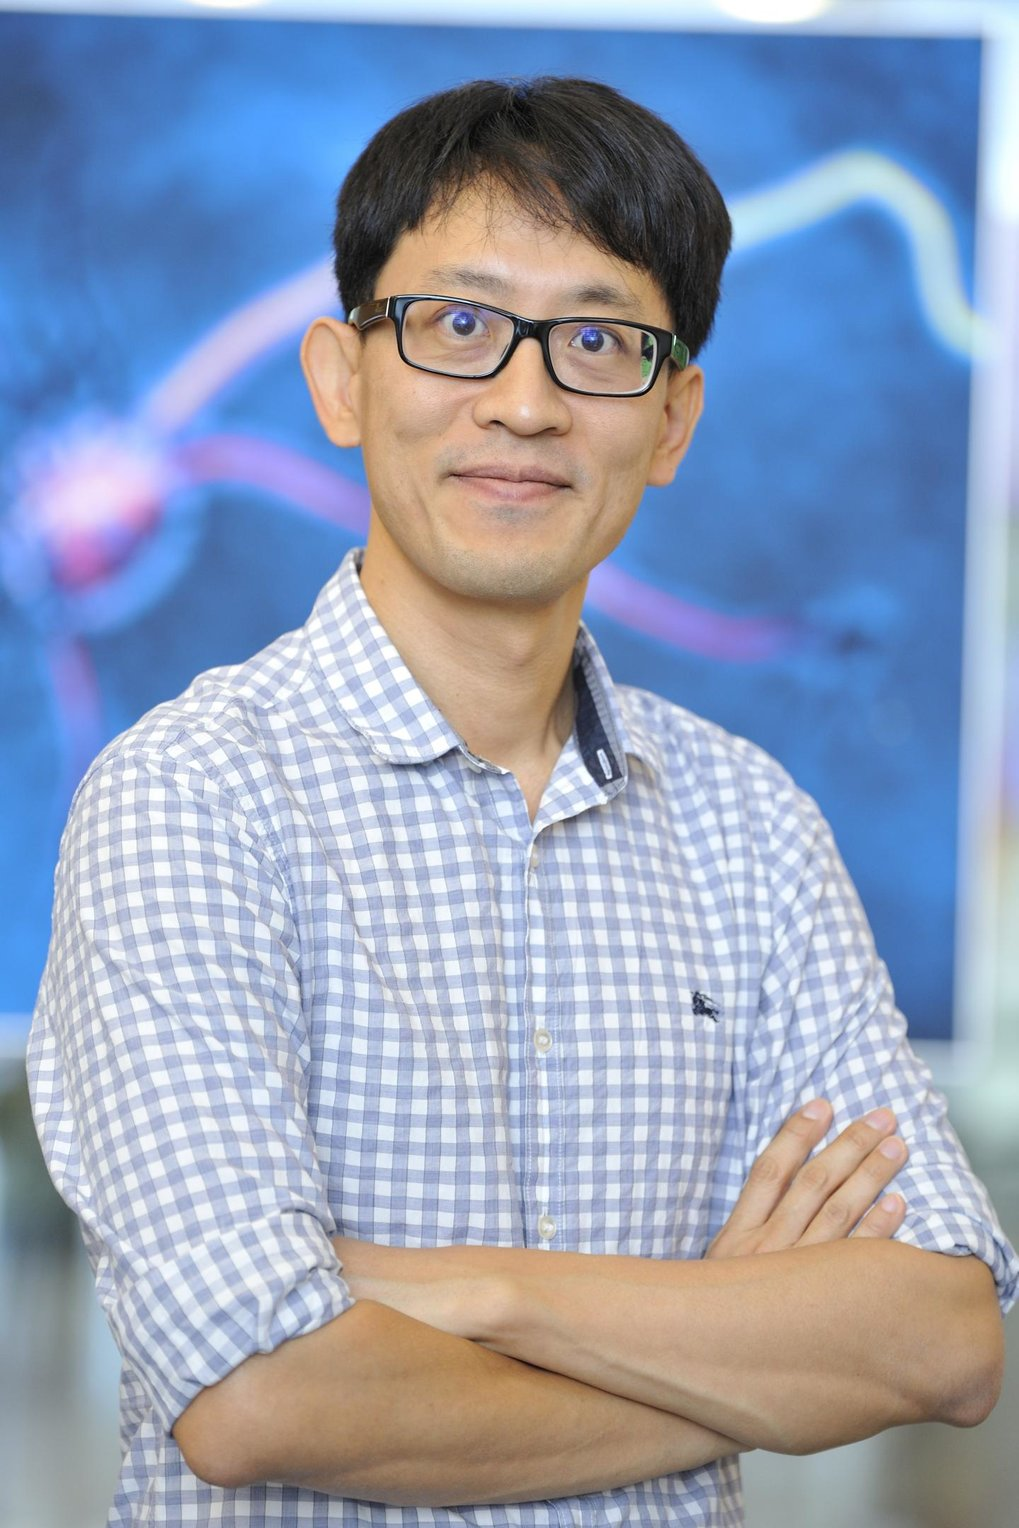 Hyungbae Kwon of Max Planck Florida wins $6.8 million Pioneer Grant